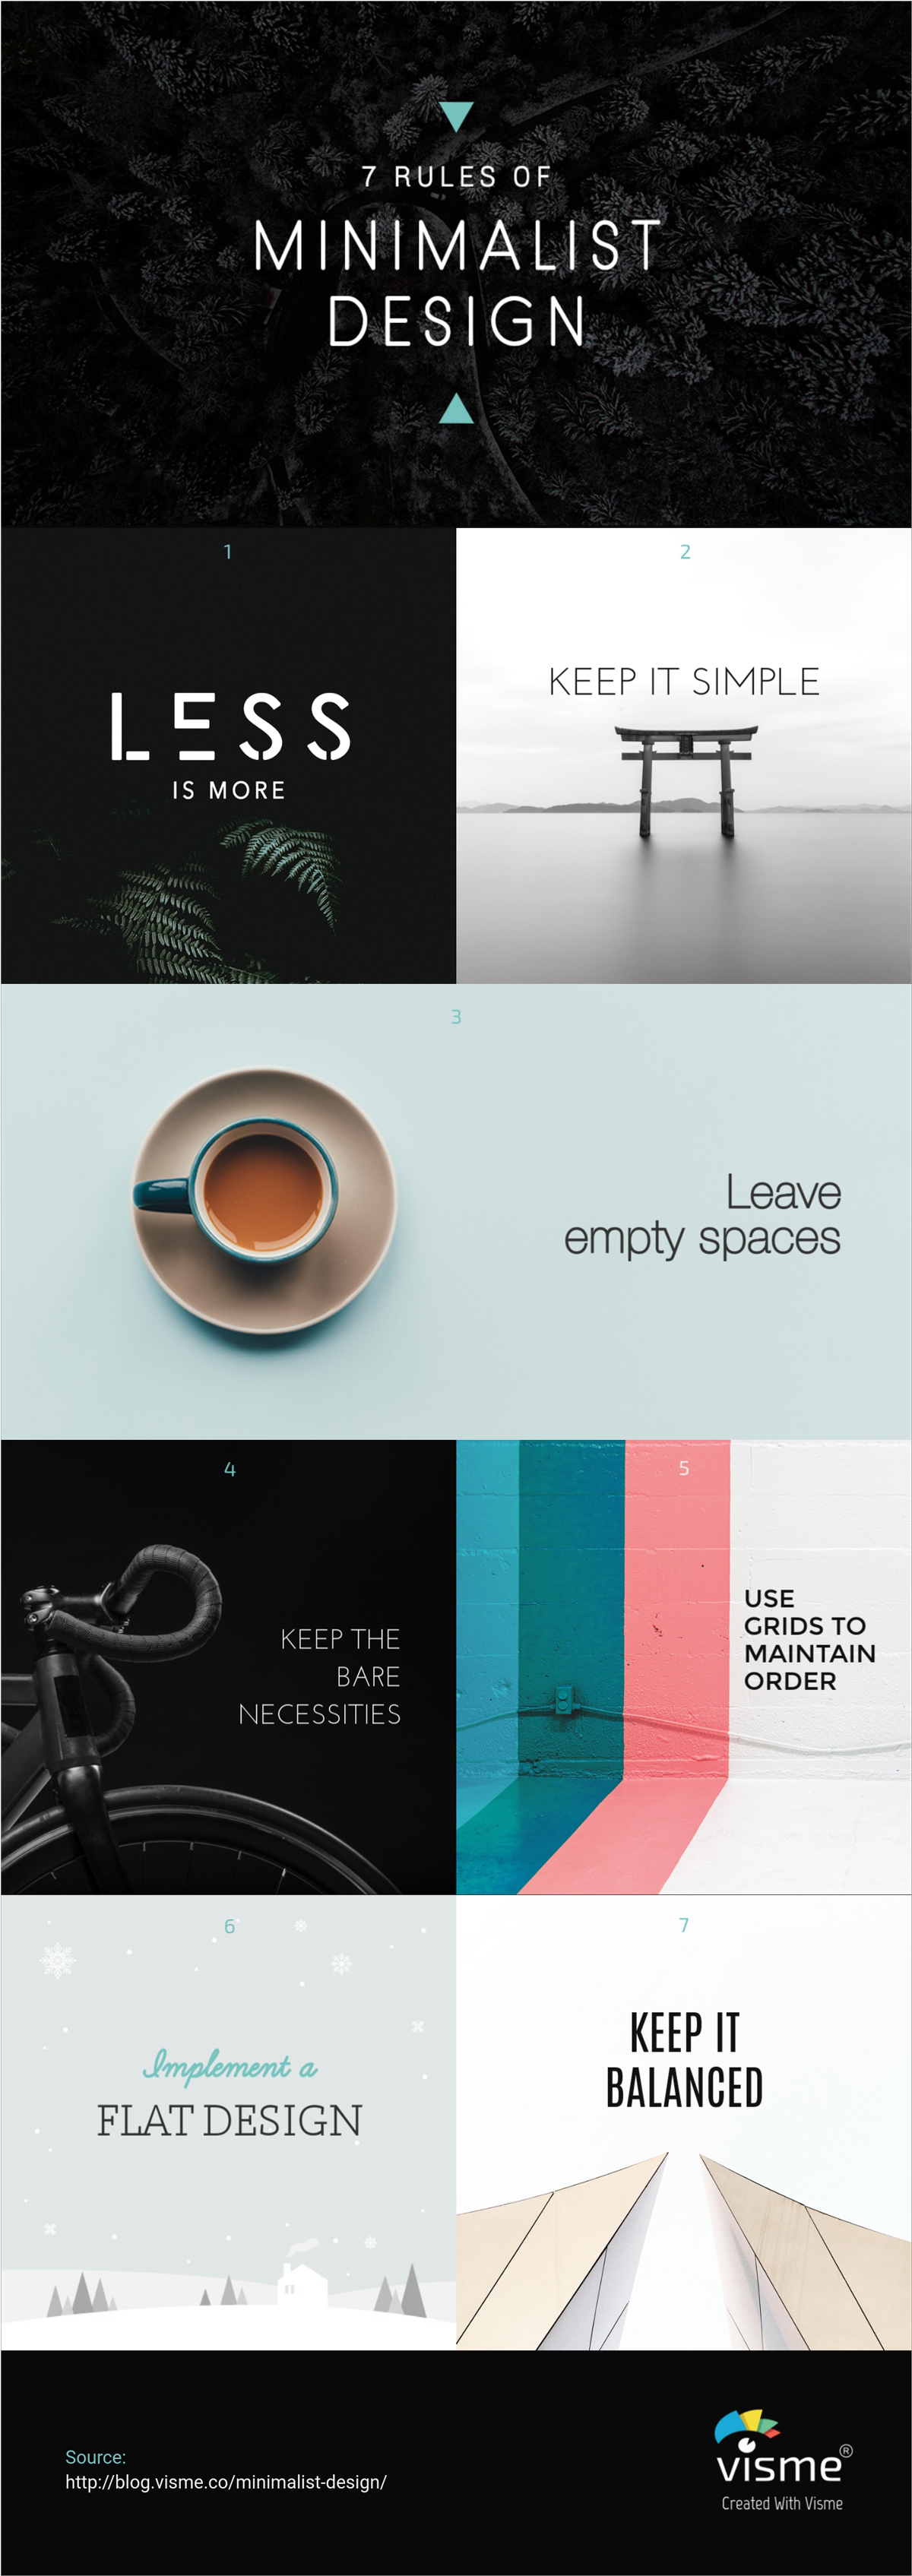 Minimalist Graphic Design 20 Examples To Inspire Your Own Creations